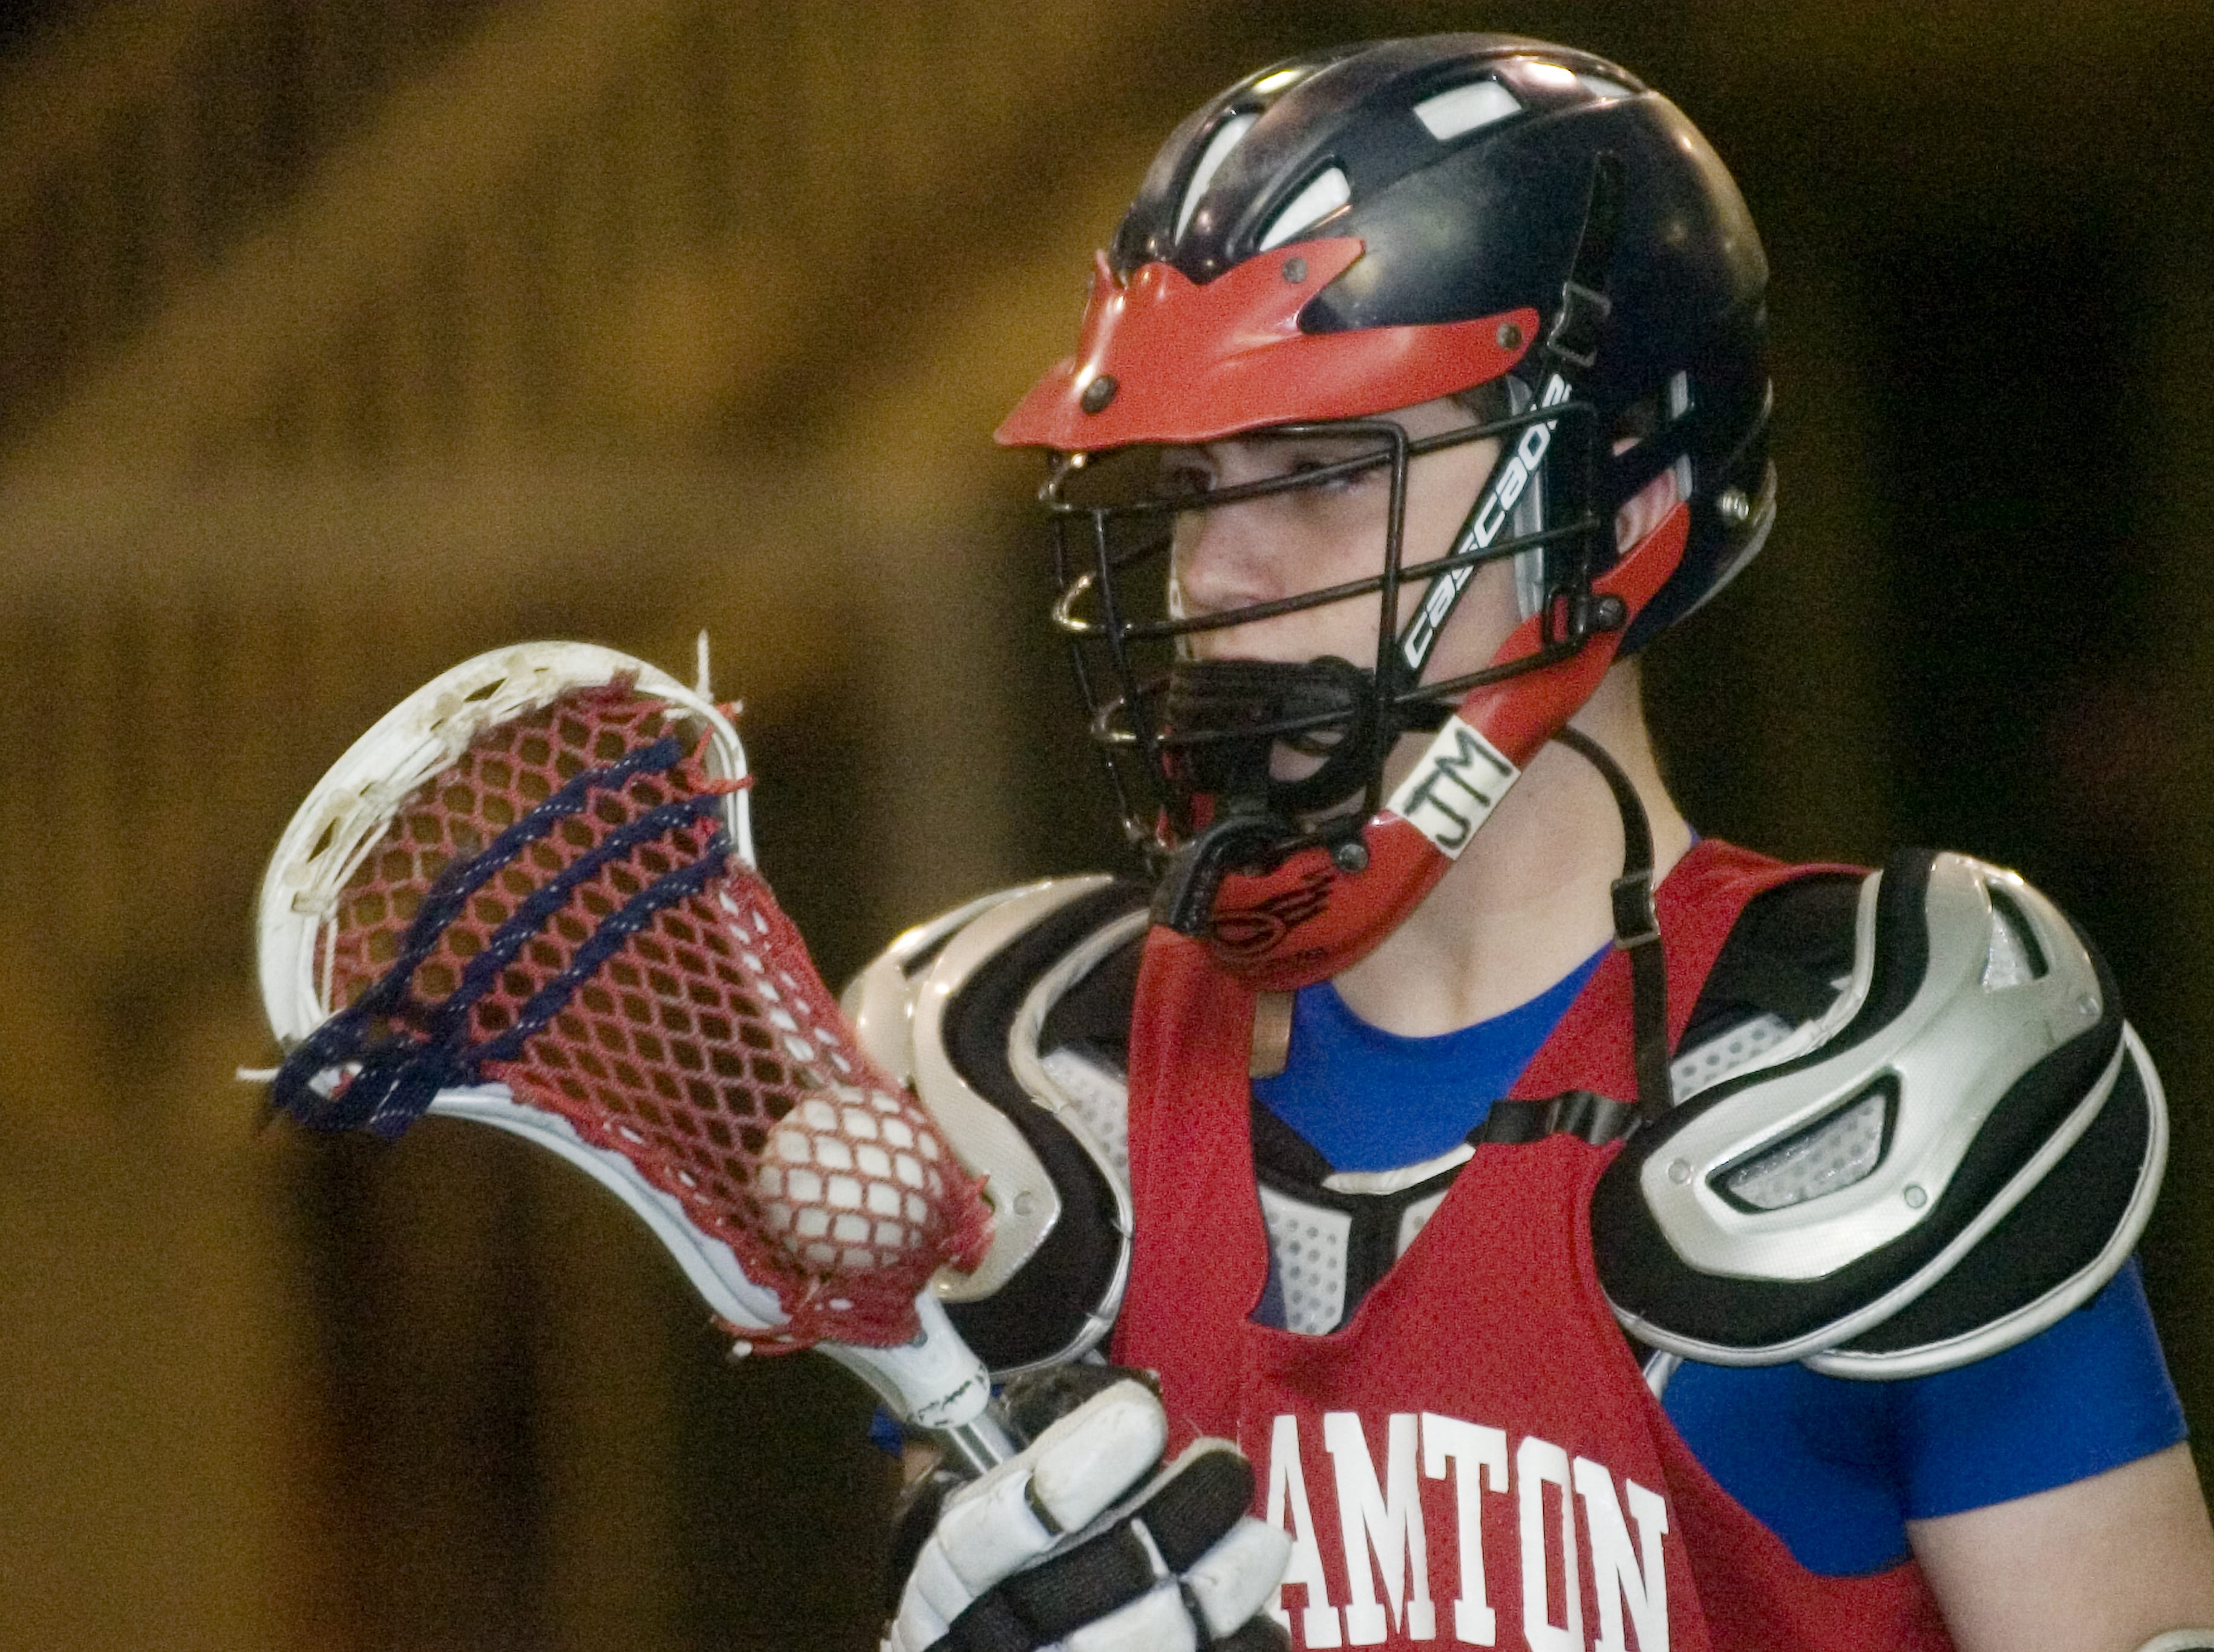 2006: Binghamtons' Marcus Hennekens sports a JM, Tuesday in memory of John Mack during a game with Vestal at the Community Sportsplex in the Town of Union, thiswas the first game since the passing of John Mack. John Mack, 17, died Thursday, two days after being checked with a lacrosse stick while playing in a Binghamton-Vestal club lacrosse game at the Community Sportsplex.